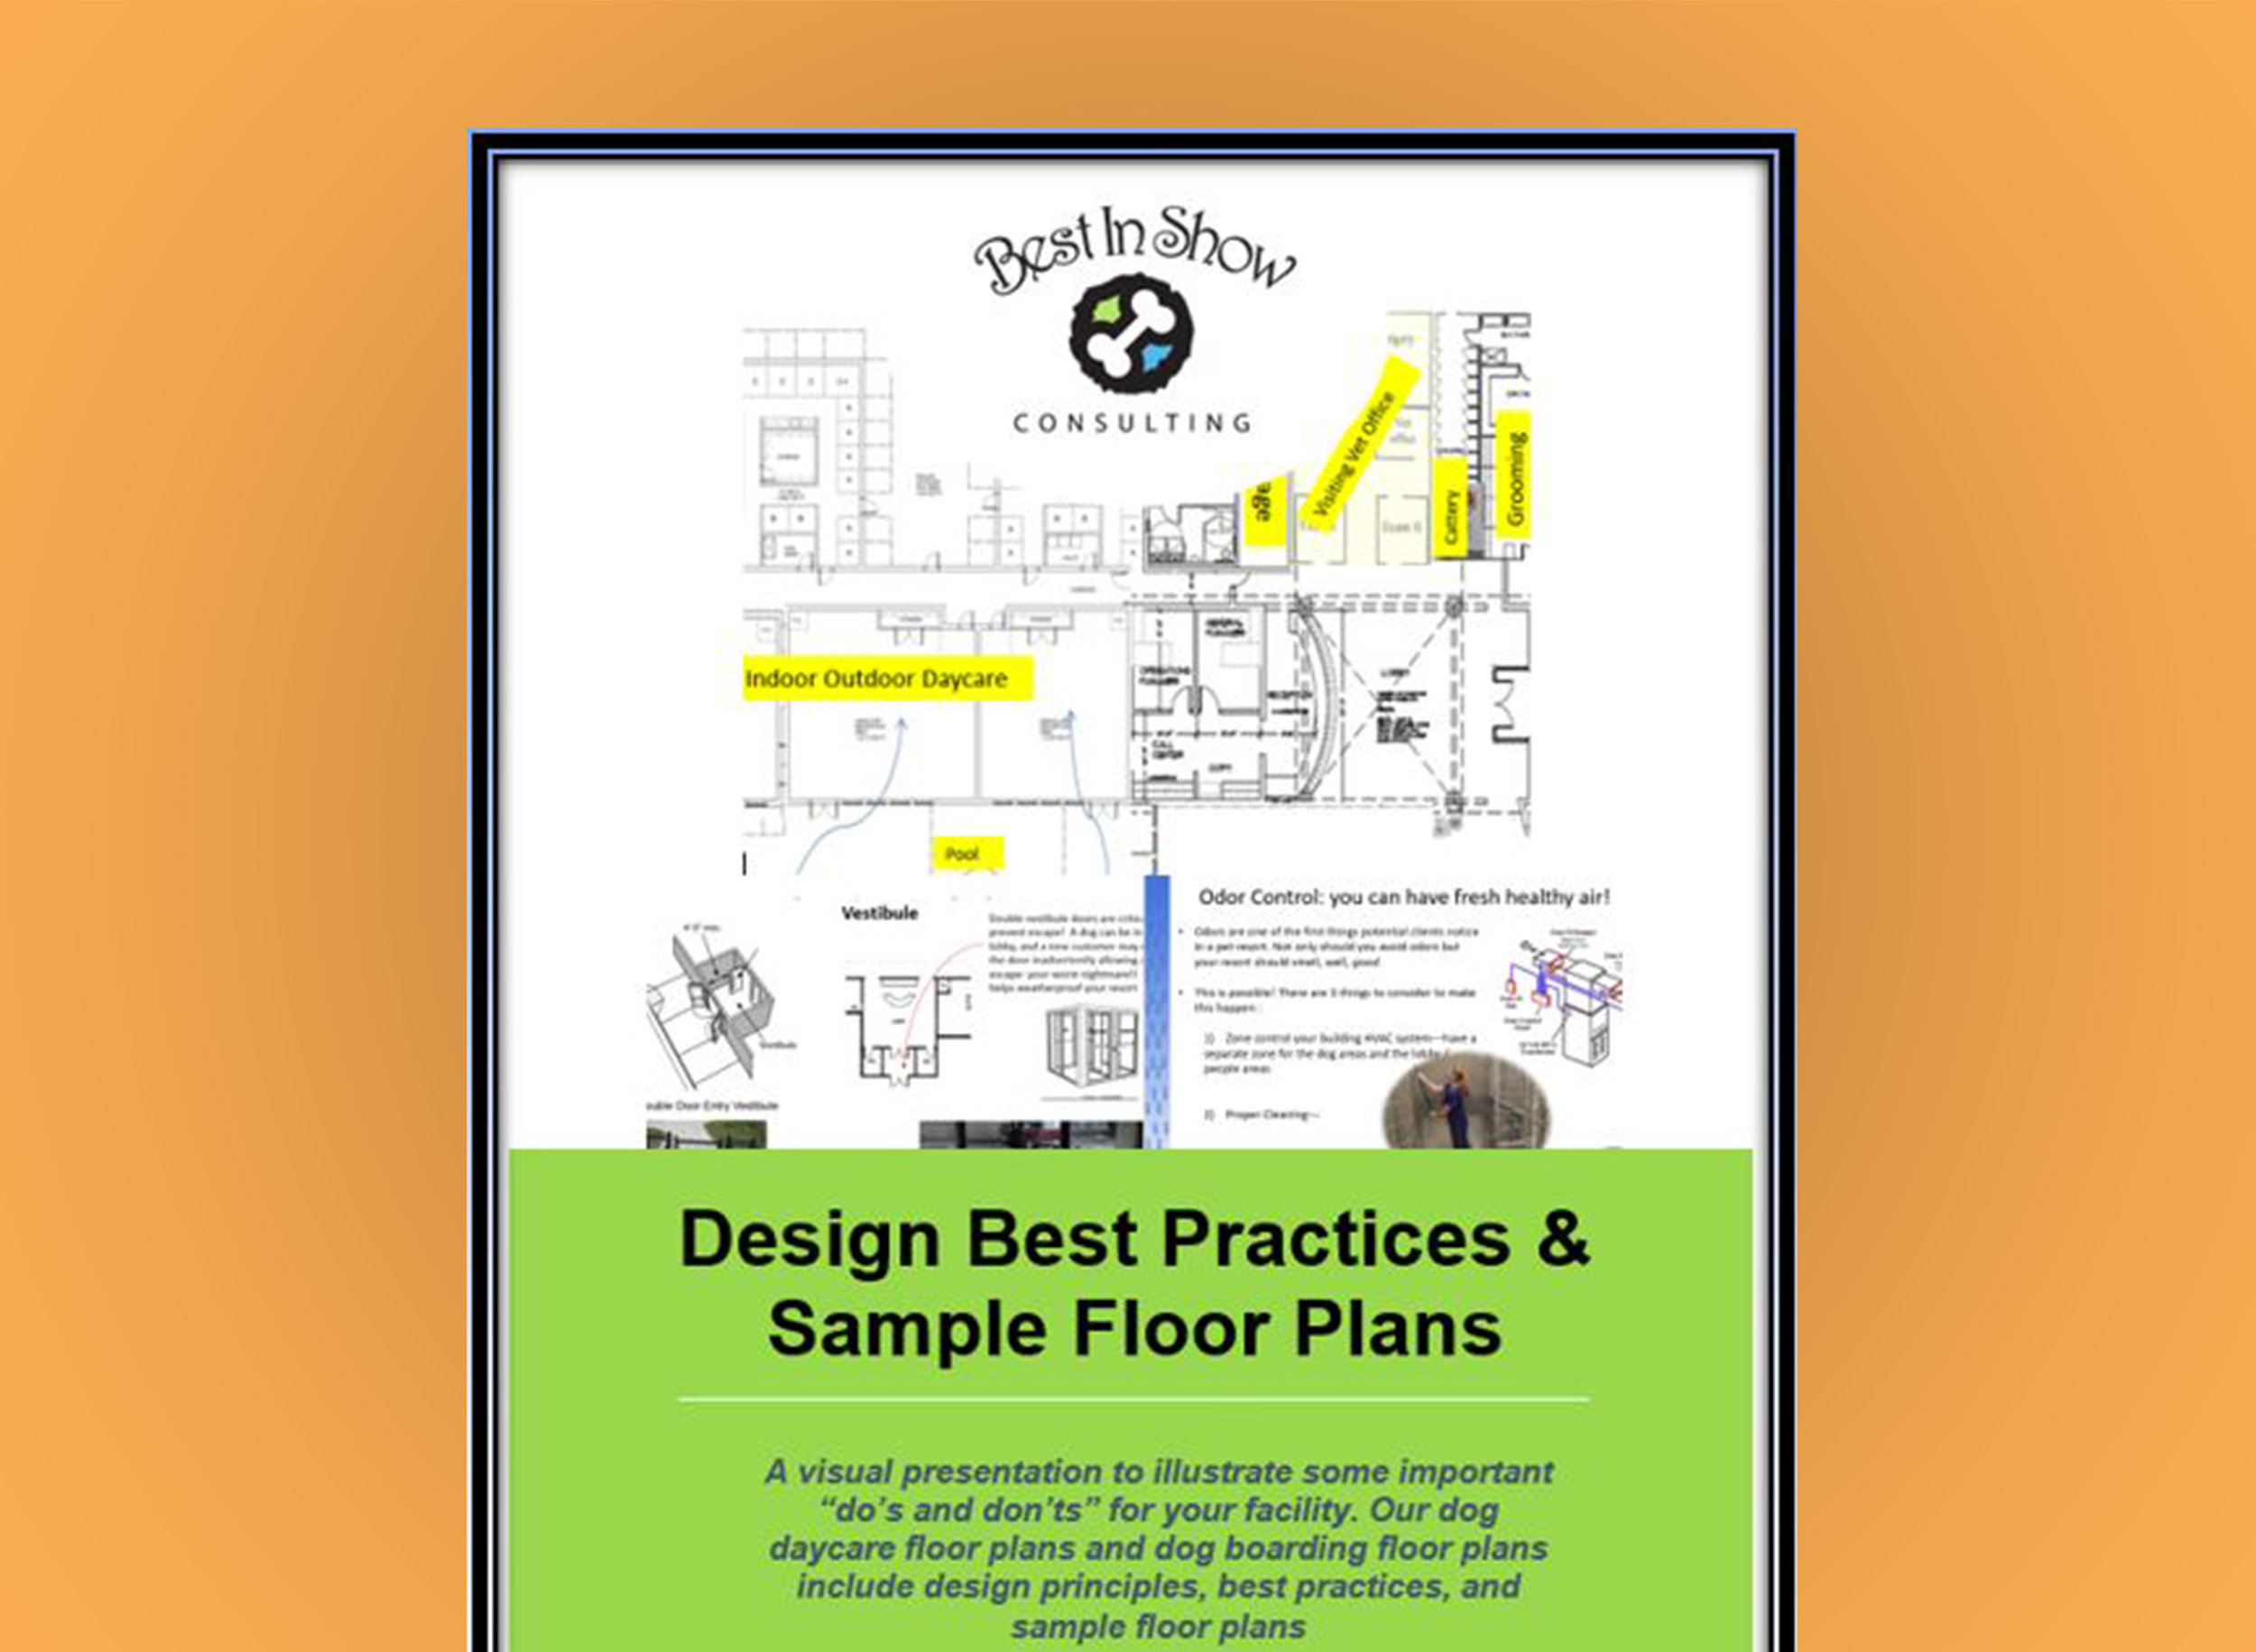 40 Pages Visually showing Design Best Practices & Sample Floor Plans